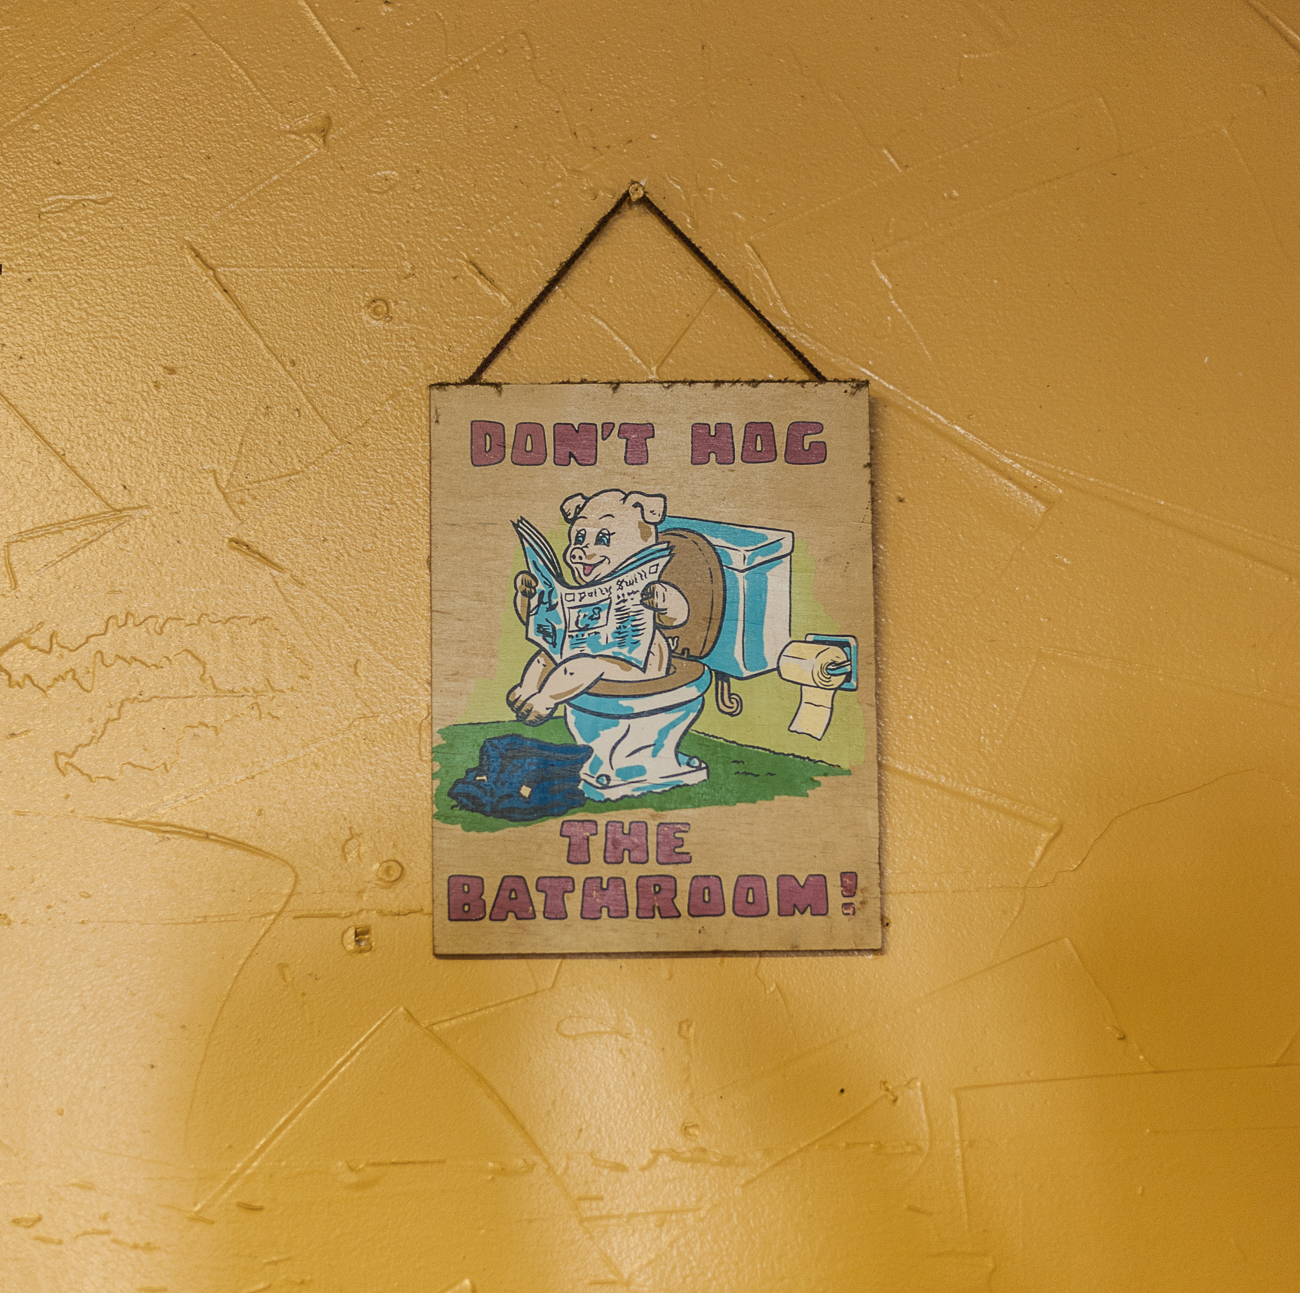 Don't hog the bathroom!{ }/ Image: Kellie Coleman // Published: 6.19.20